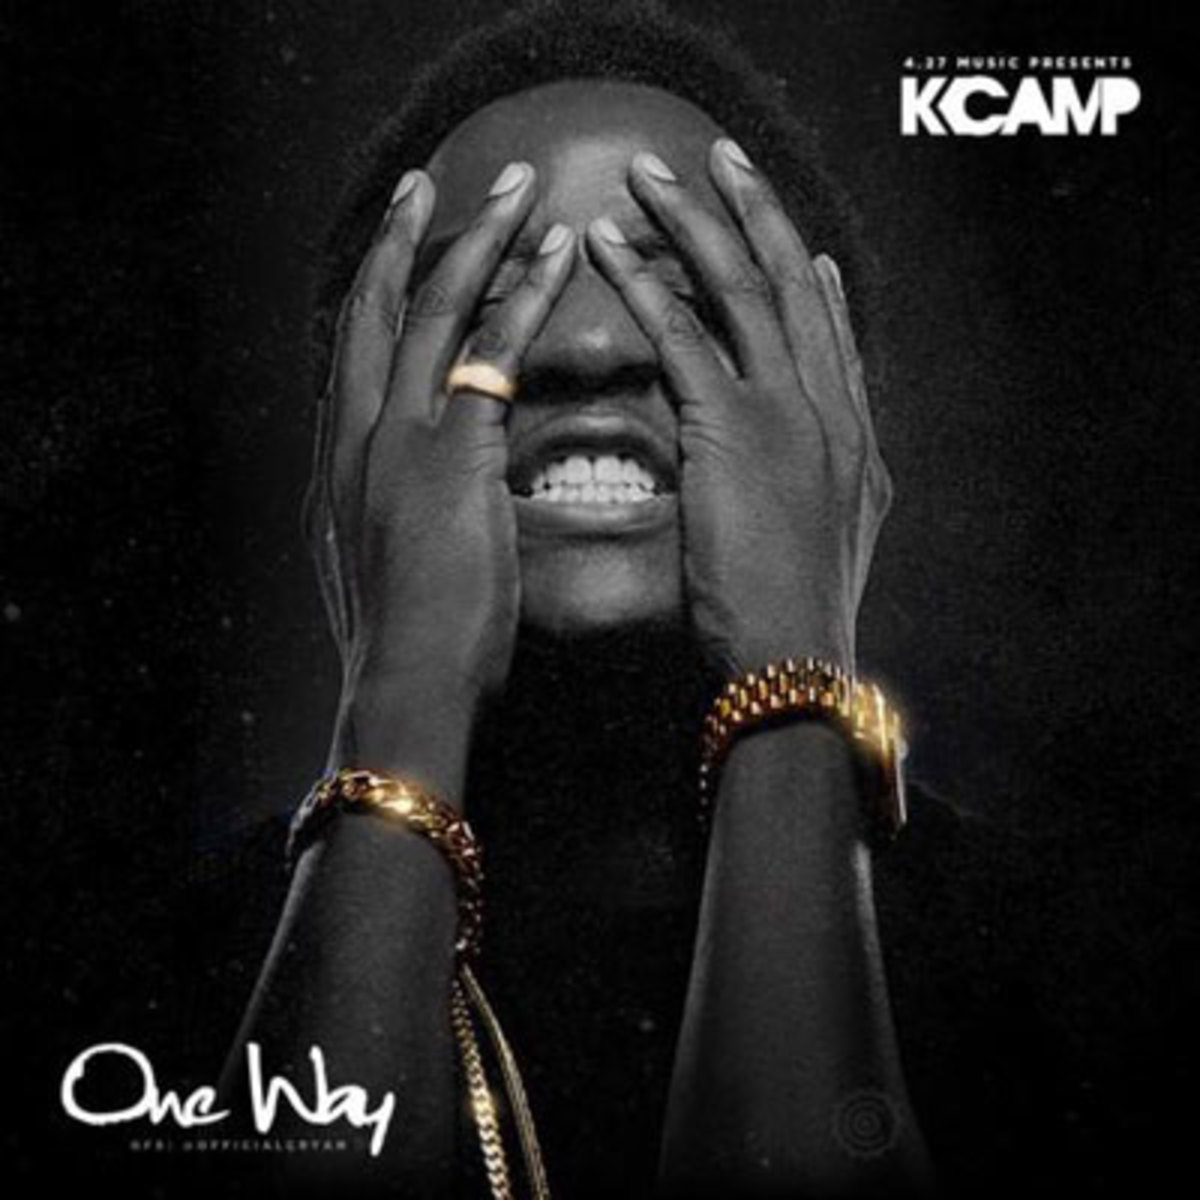 k-camp-one-way.jpg